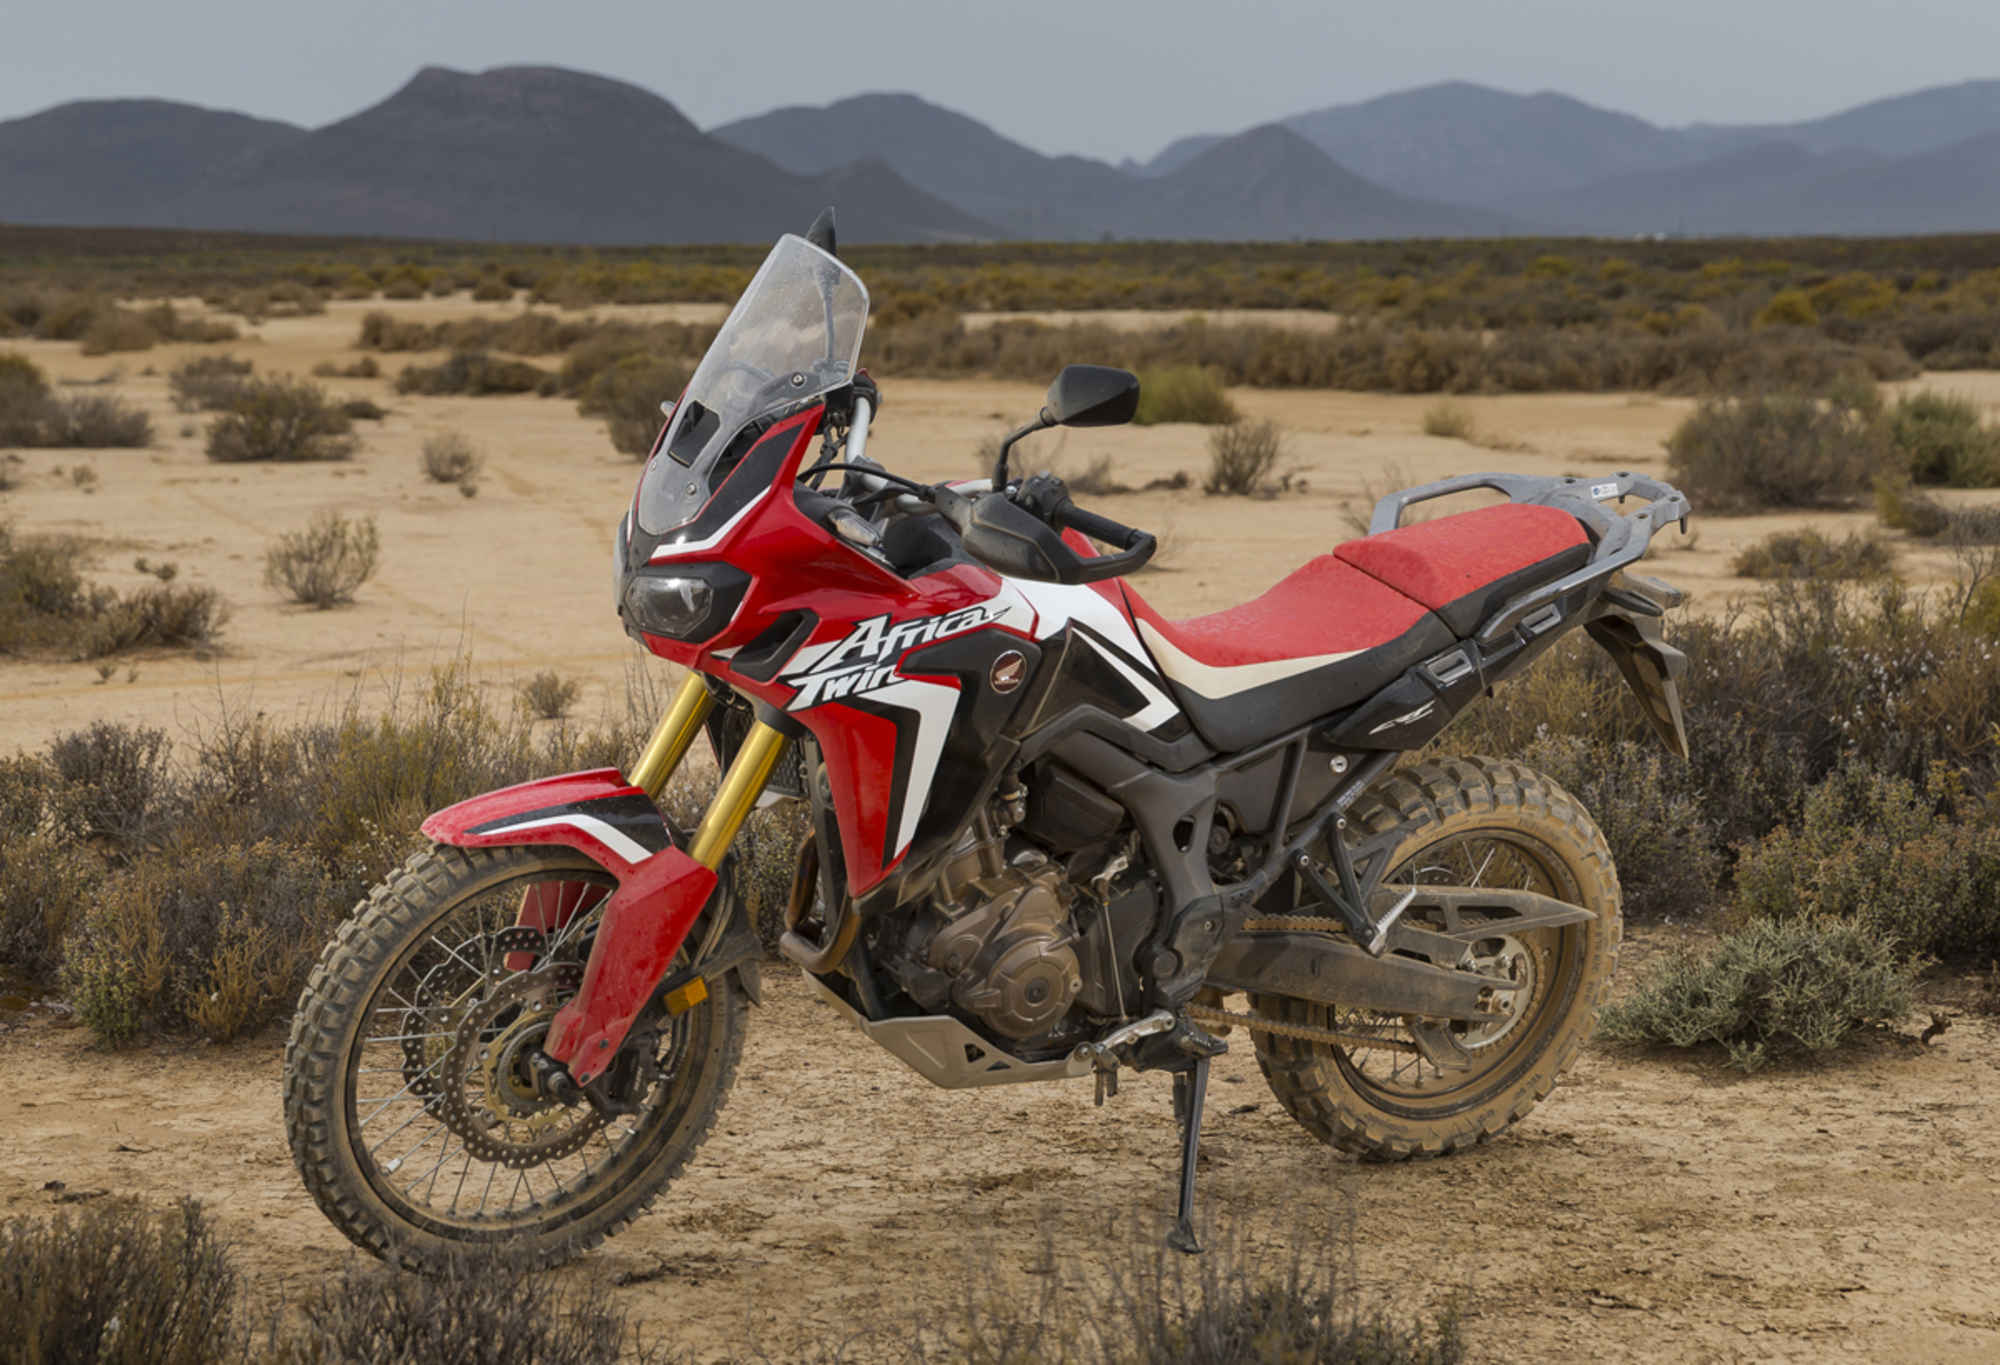 2016 Honda CRF1000L Africa Twin Review